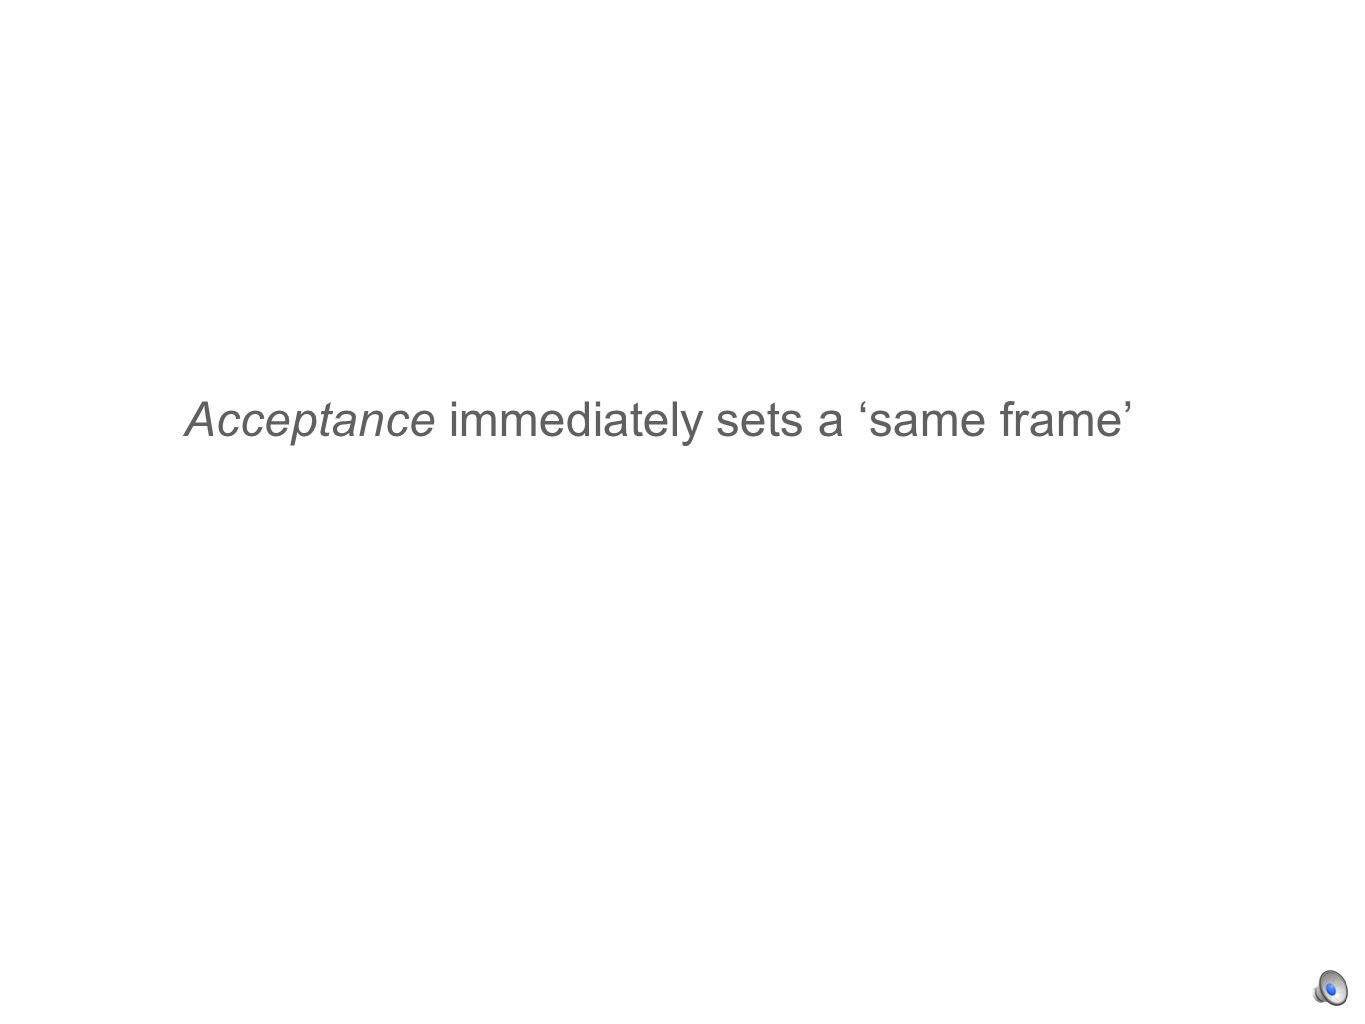 Acceptance immediately sets a same frame